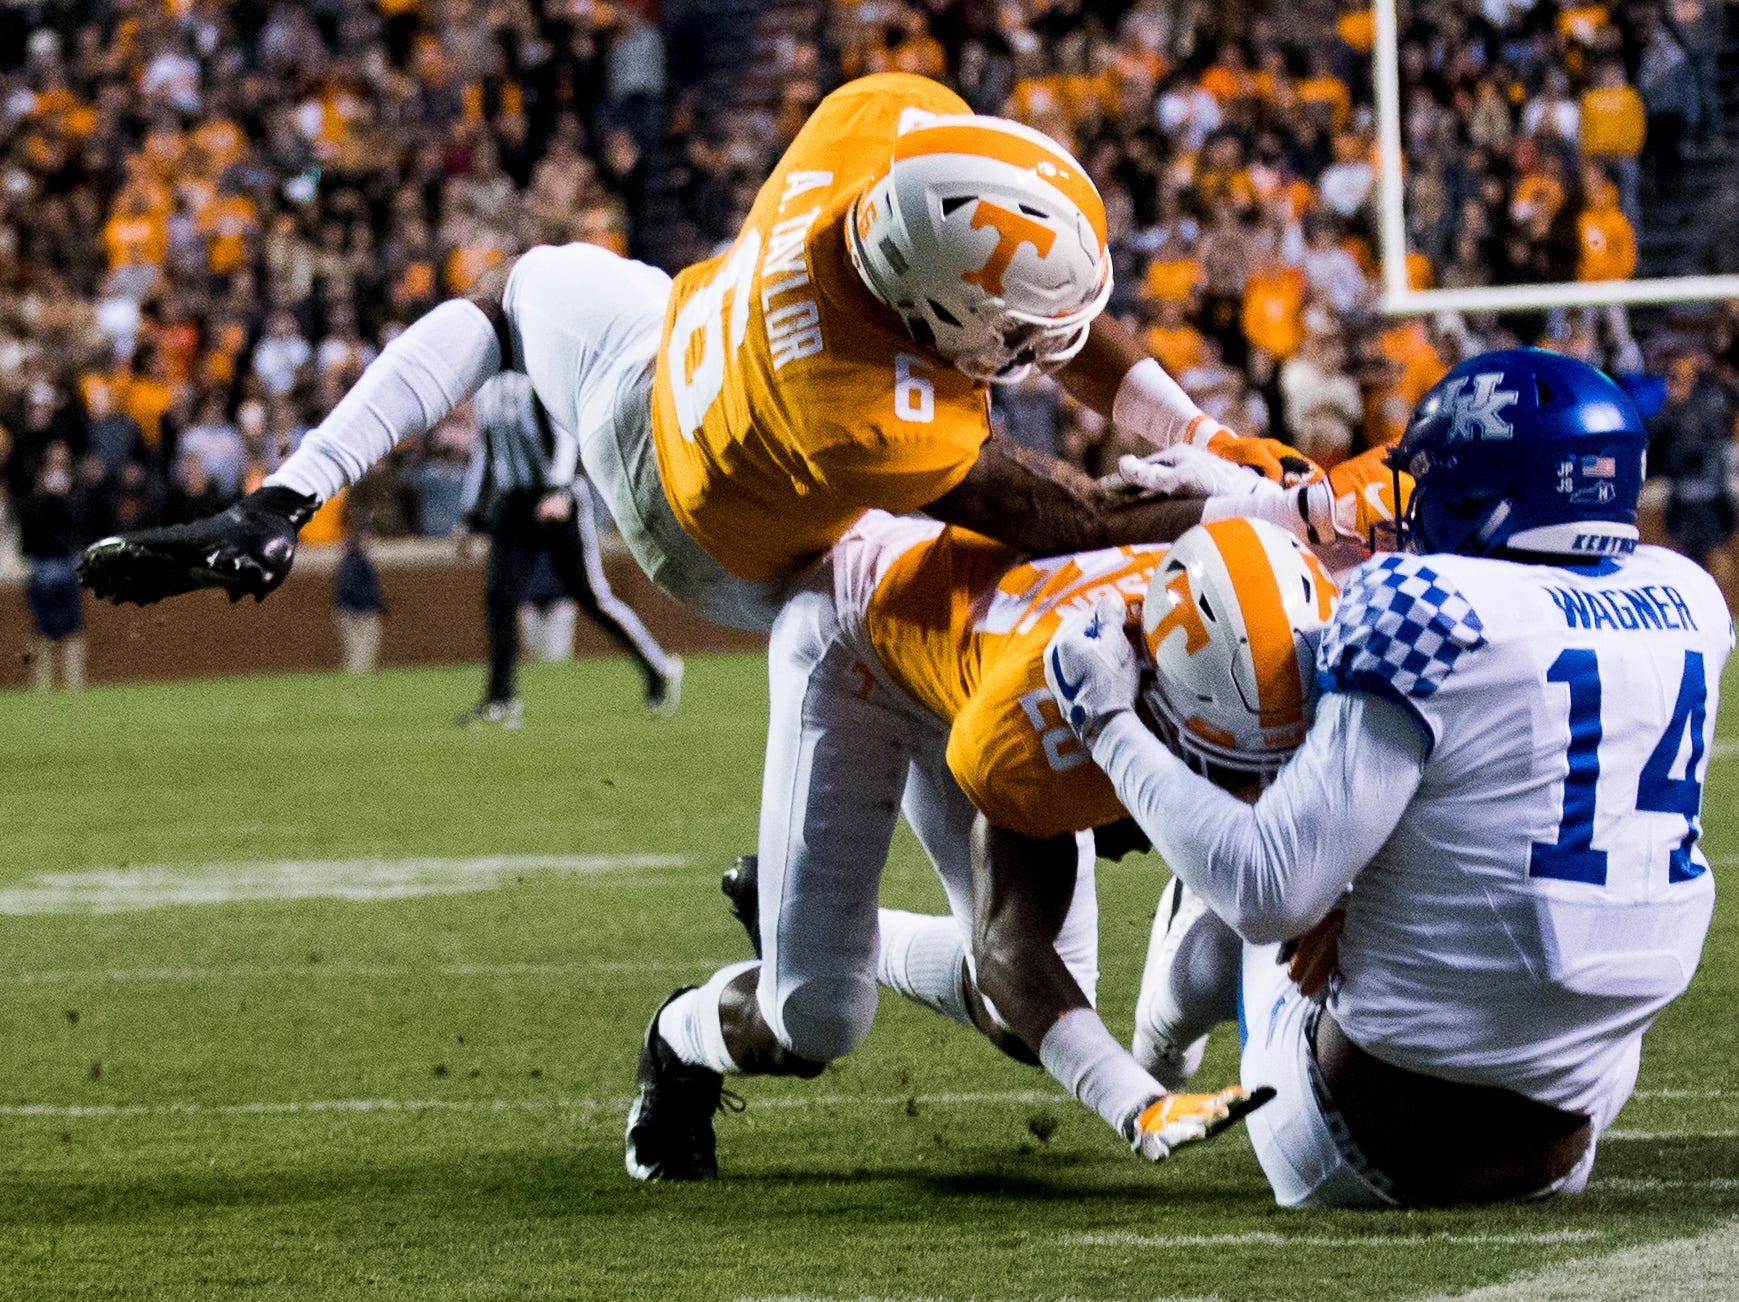 Kentucky wide receiver Ahmad Wagner (14) falls to the ground as Tennessee defensive back Baylen Buchanan (28) and Tennessee defensive back/wide receiver Alontae Taylor (6) defend during a game between Tennessee and Kentucky at Neyland Stadium in Knoxville, Tennessee on Saturday, November 10, 2018.